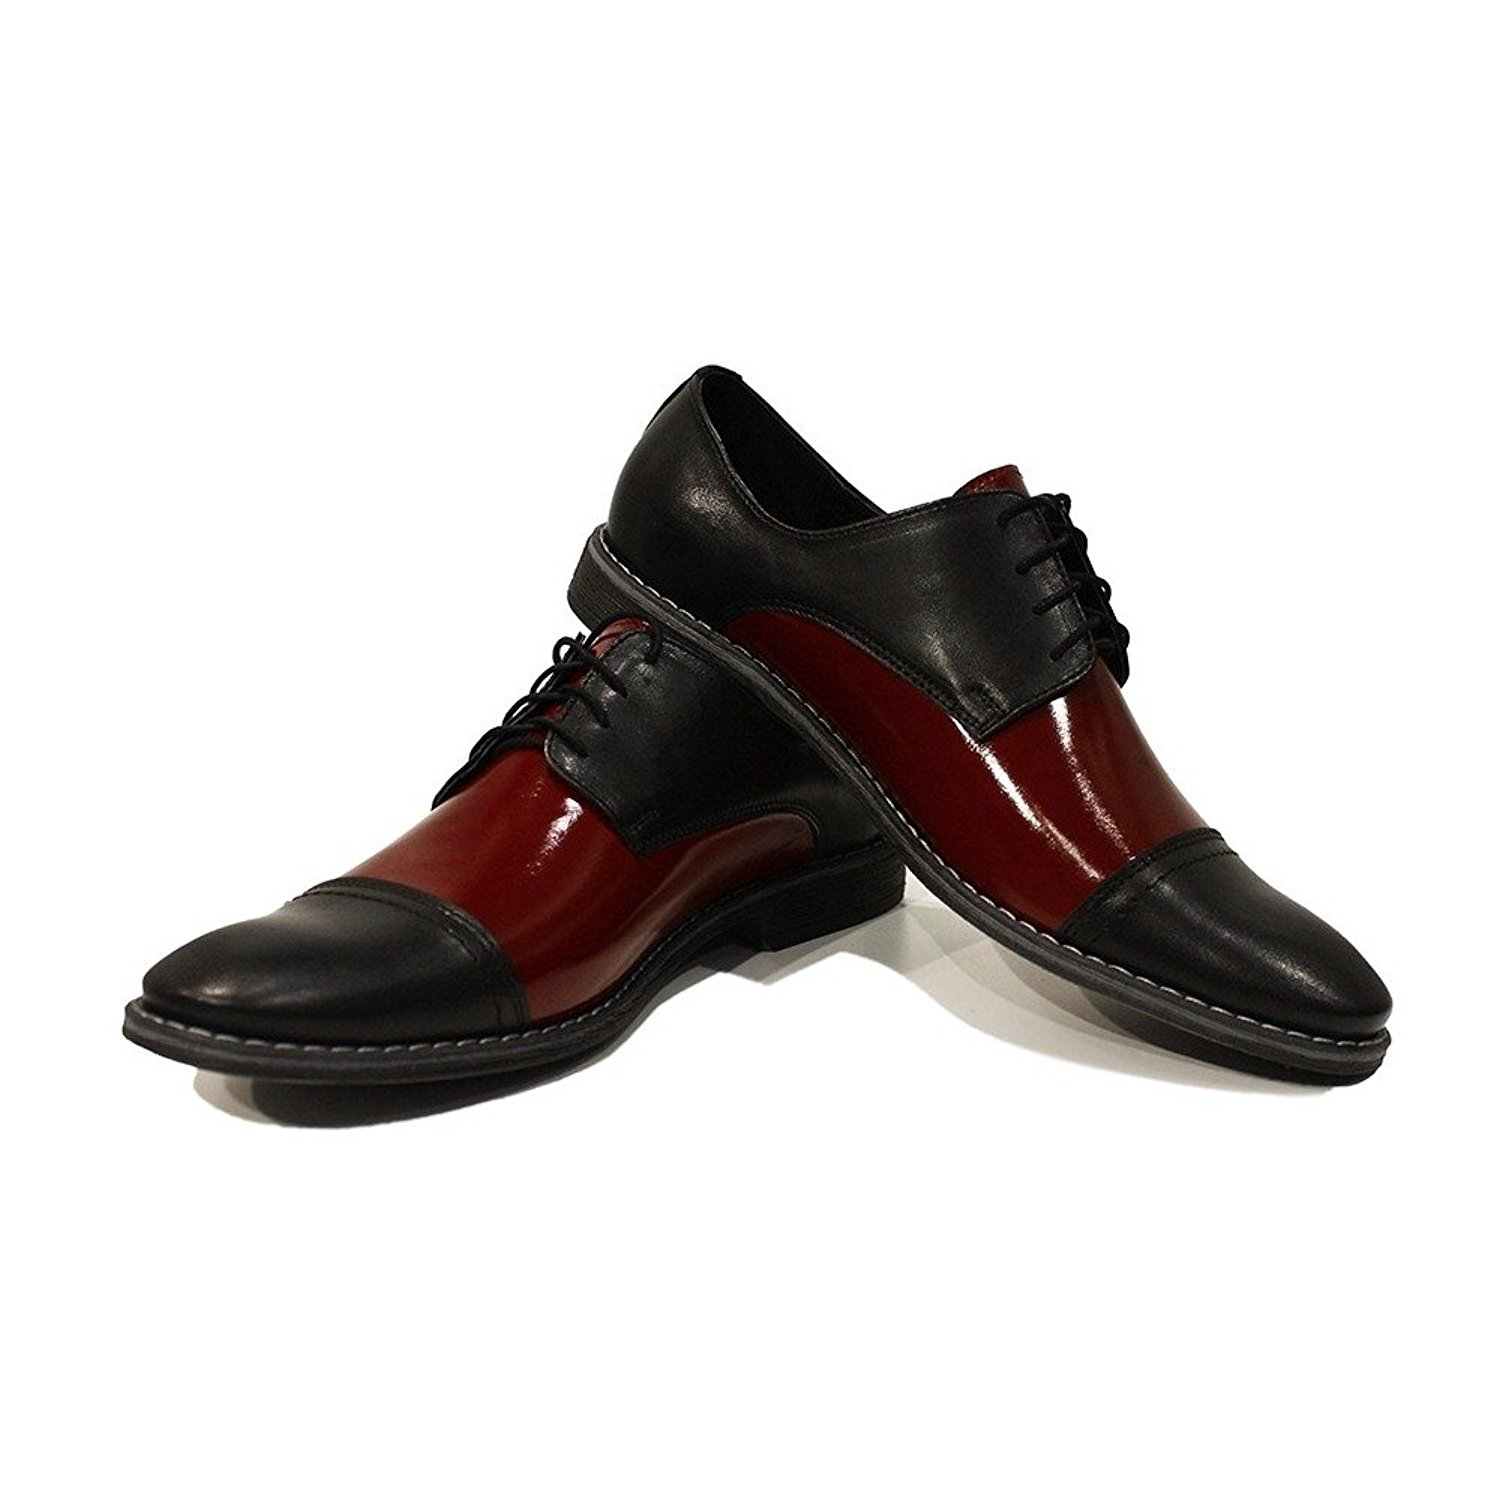 Modelo Maurizio - Handmade Italian Mens Burgundy Oxfords Dress Shoes - Cowhide Patent Leather - Lace-up